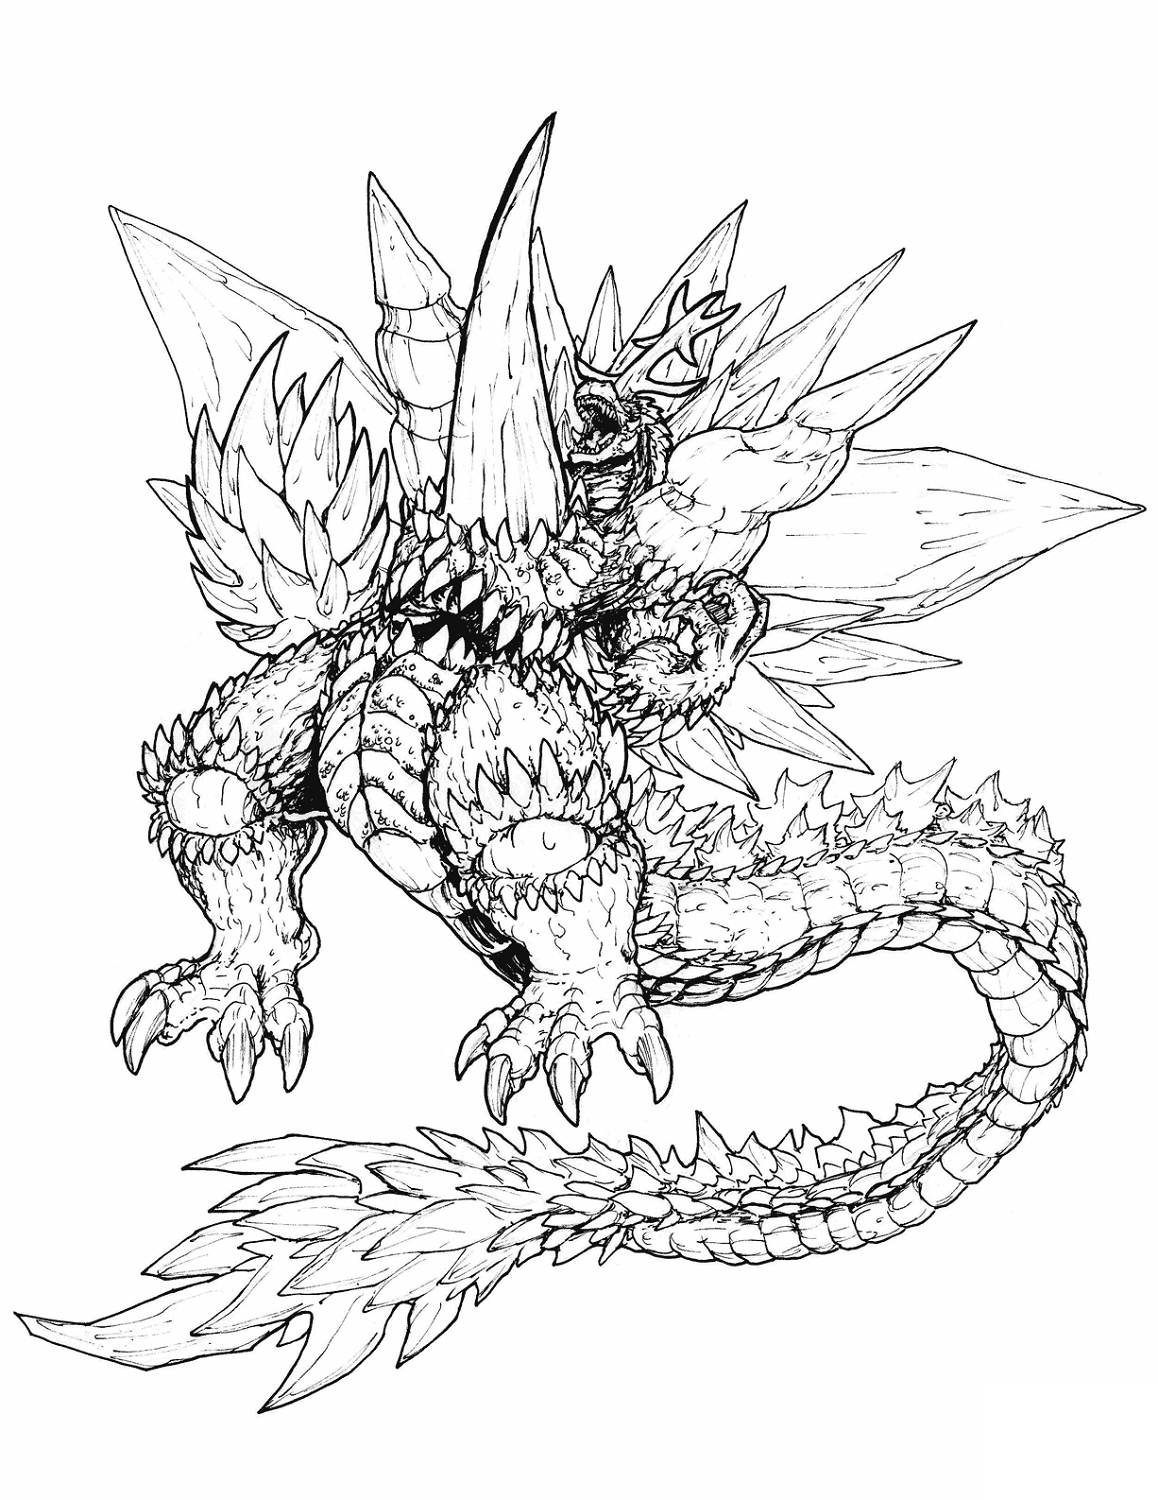 godzilla coloring picture godzilla coloring pages coloring pages to download and print coloring picture godzilla